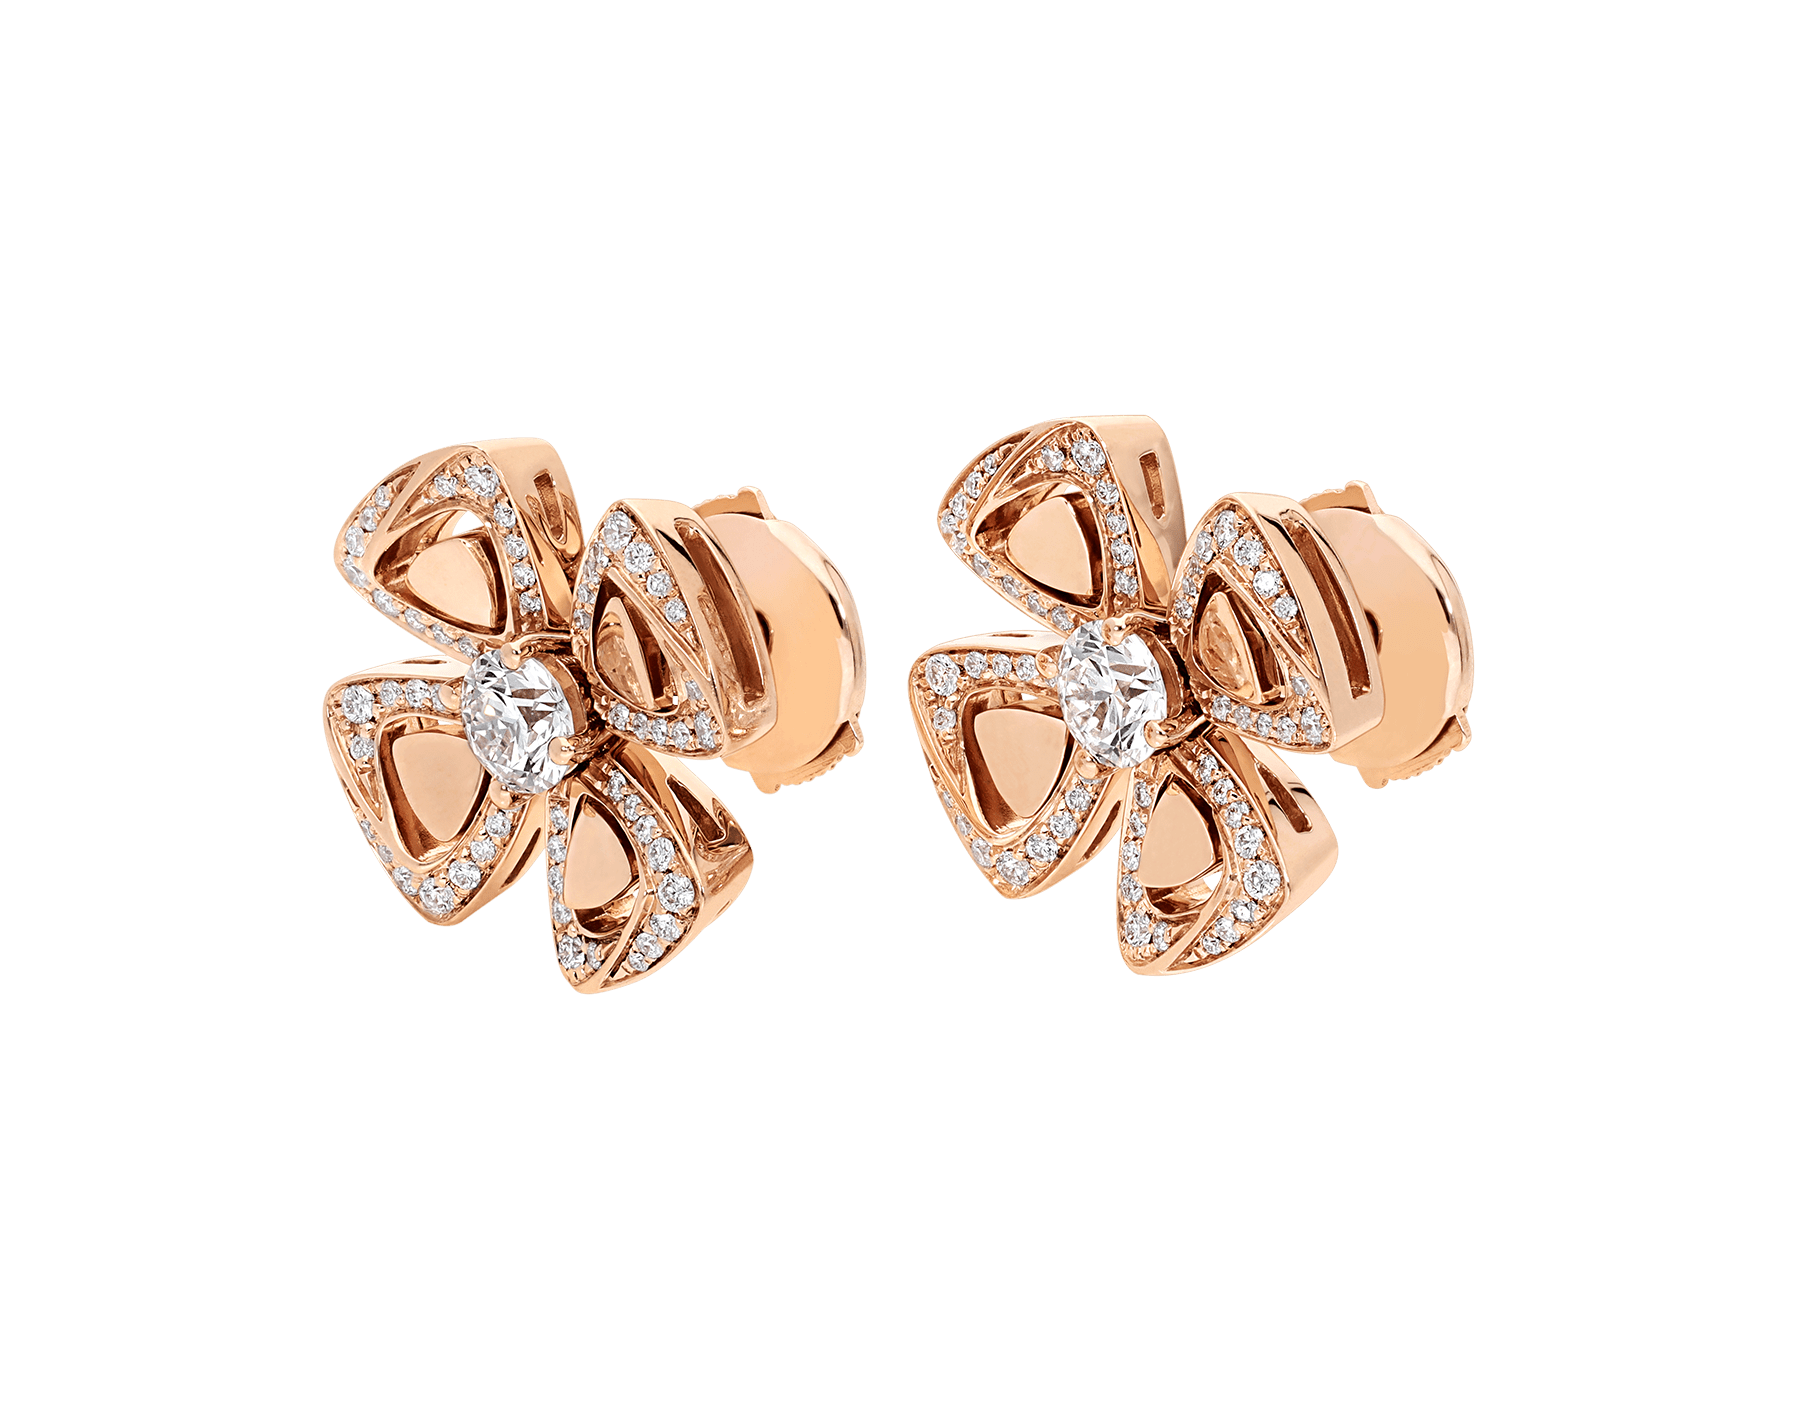 Fiorever 18 kt rose gold earrings set with two central diamonds (0.20 ct each) and pavé diamonds (0.25 ct) 356280 image 2